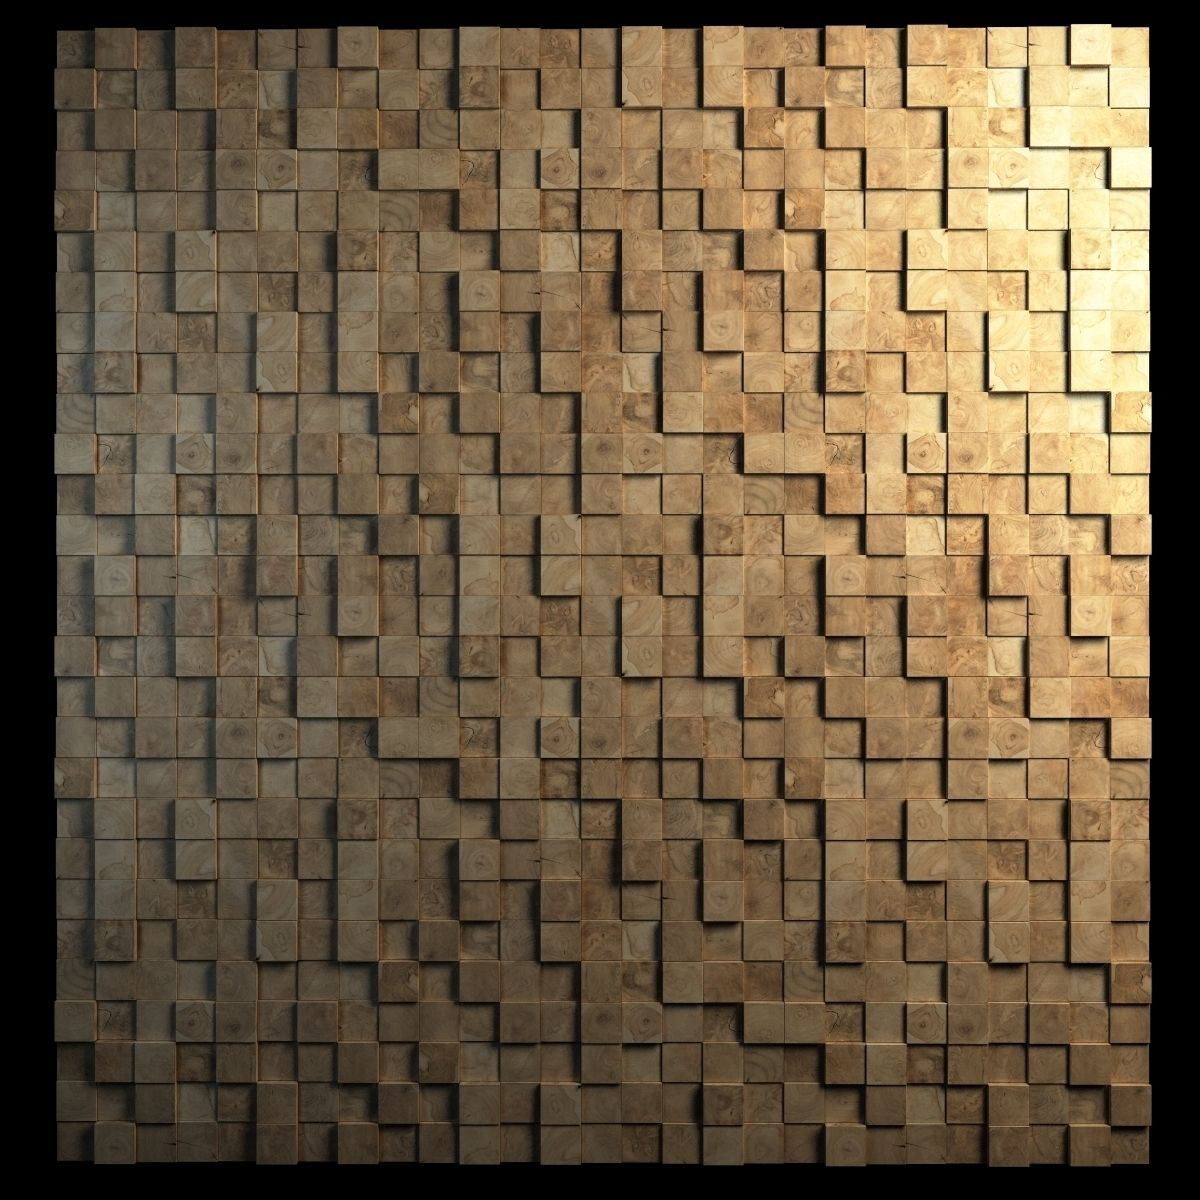 Teak Interior Cladding 3d Wall 3d Model Max Obj 3ds